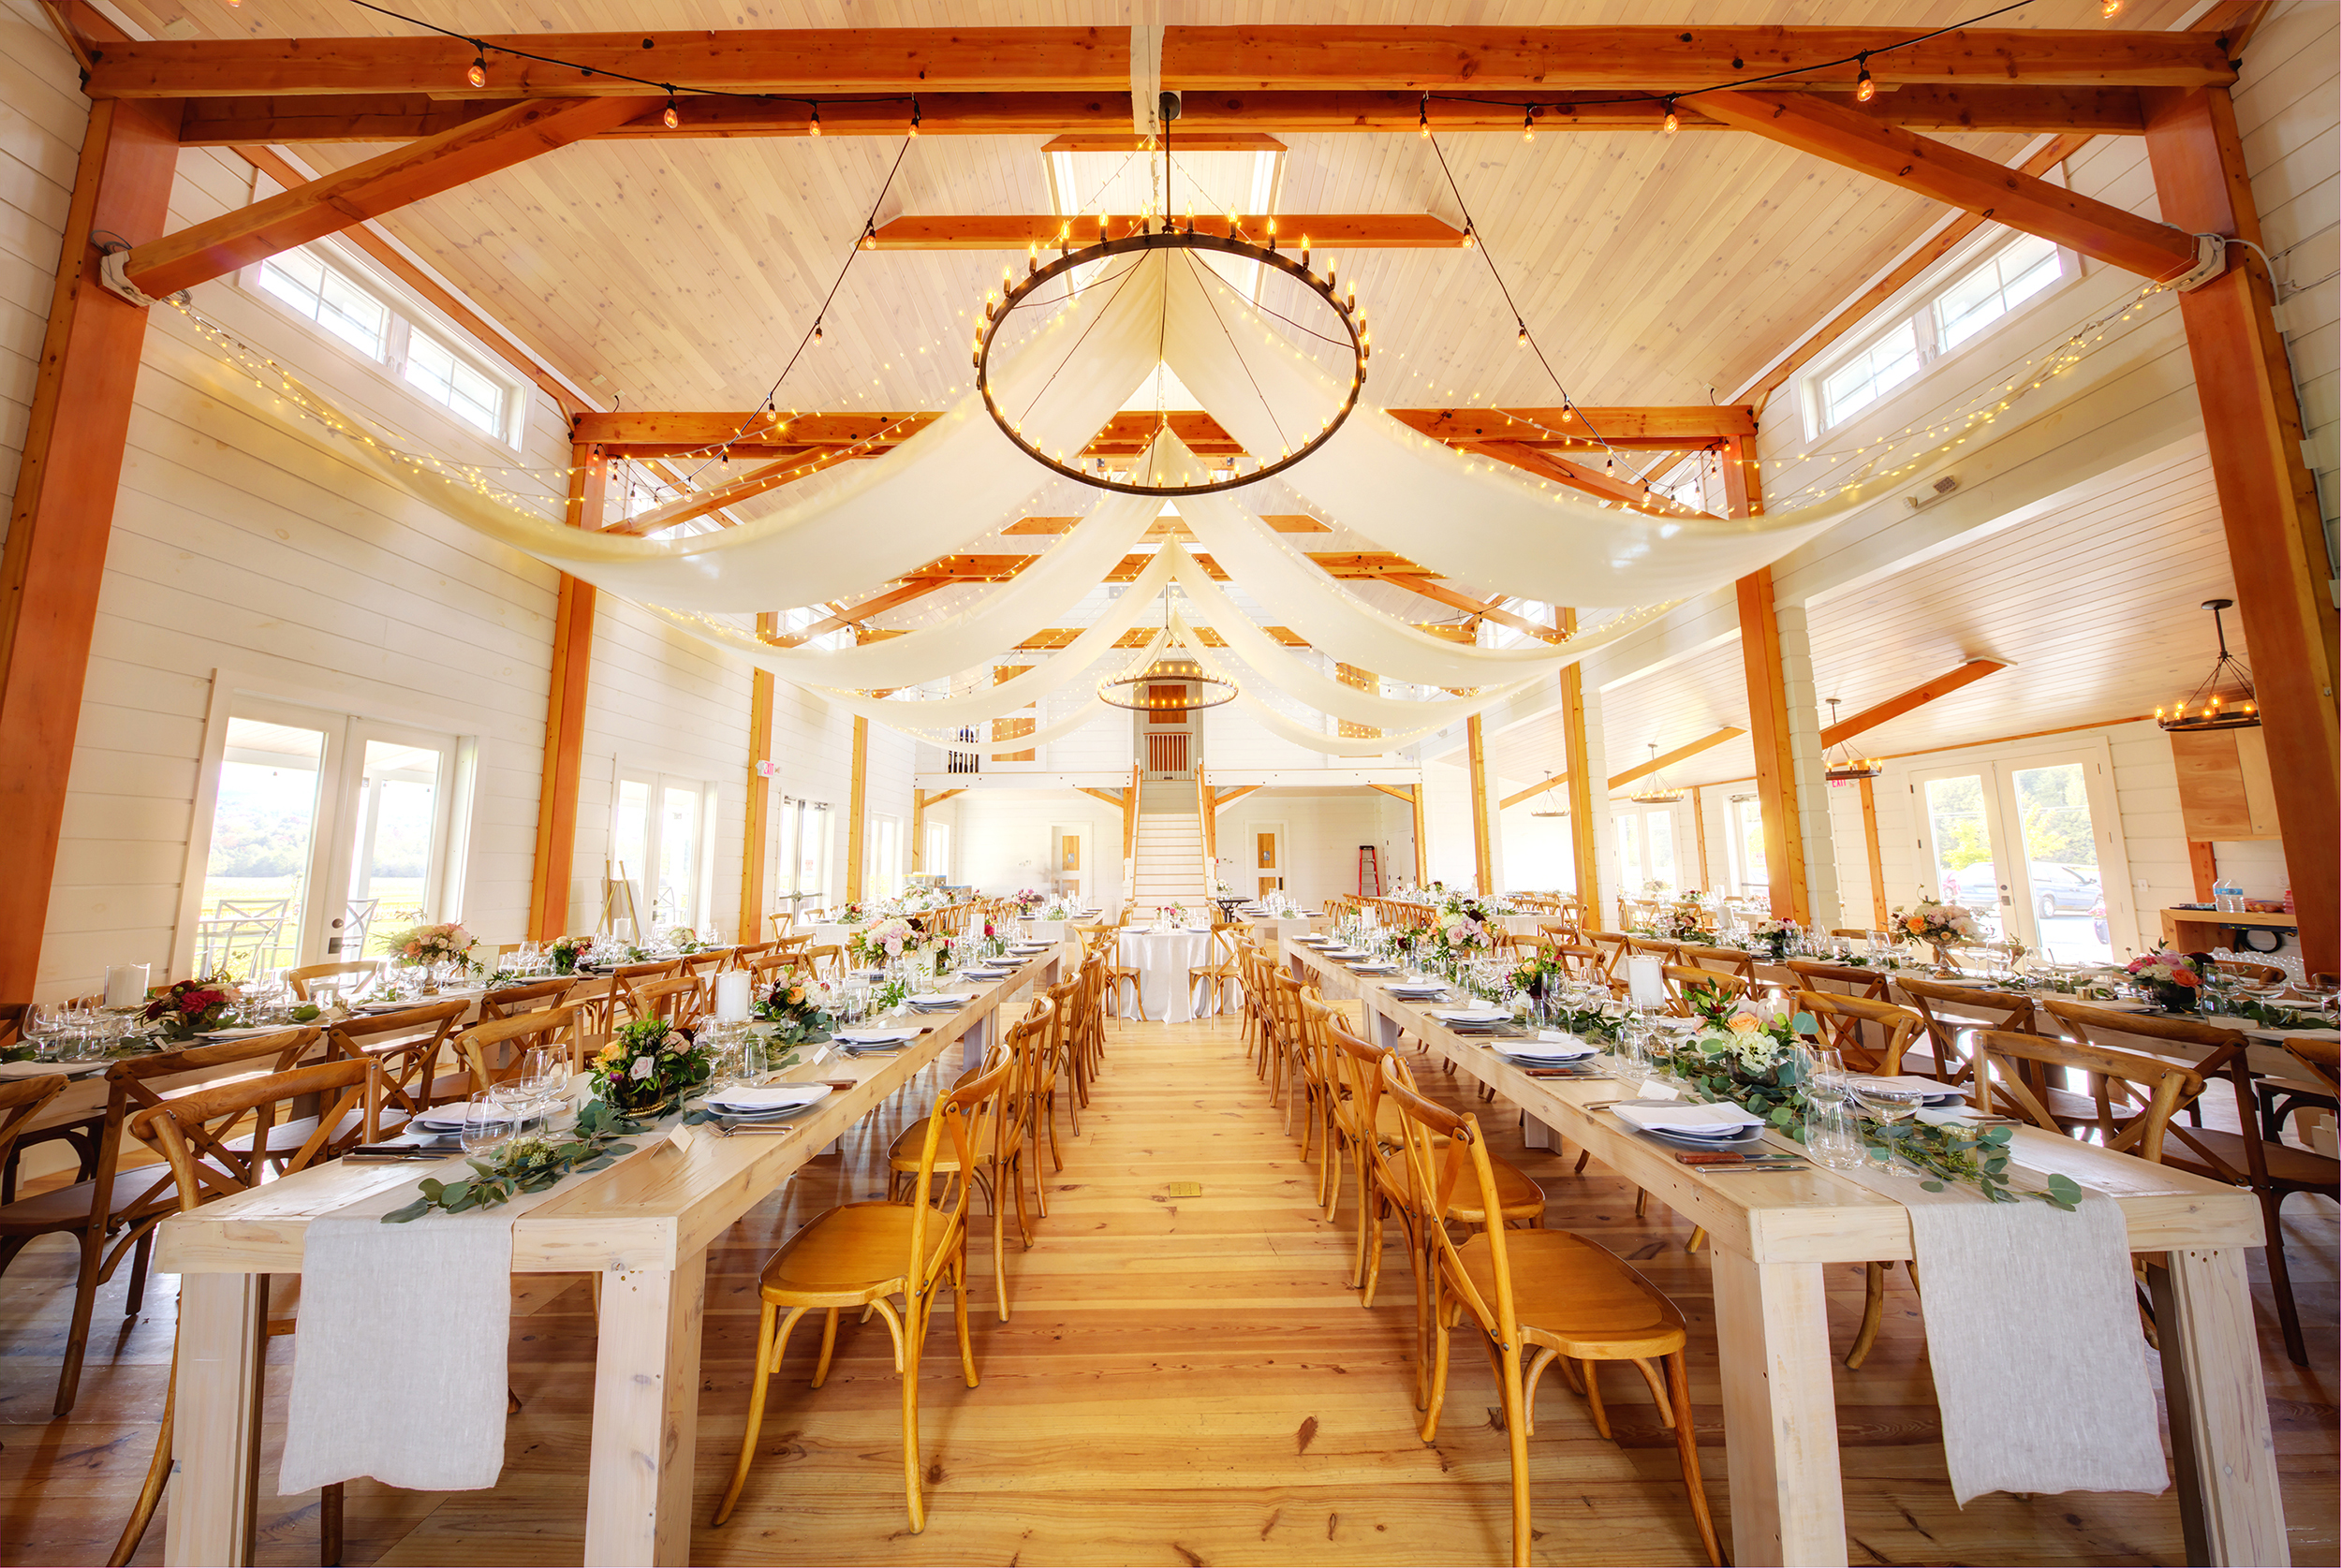 A partial view of the Main Venue Space as seen from Large Sliding Farm Doors and looking towards Central Sweeping Staircase and Bridal Suite. Image: Steve DePalma